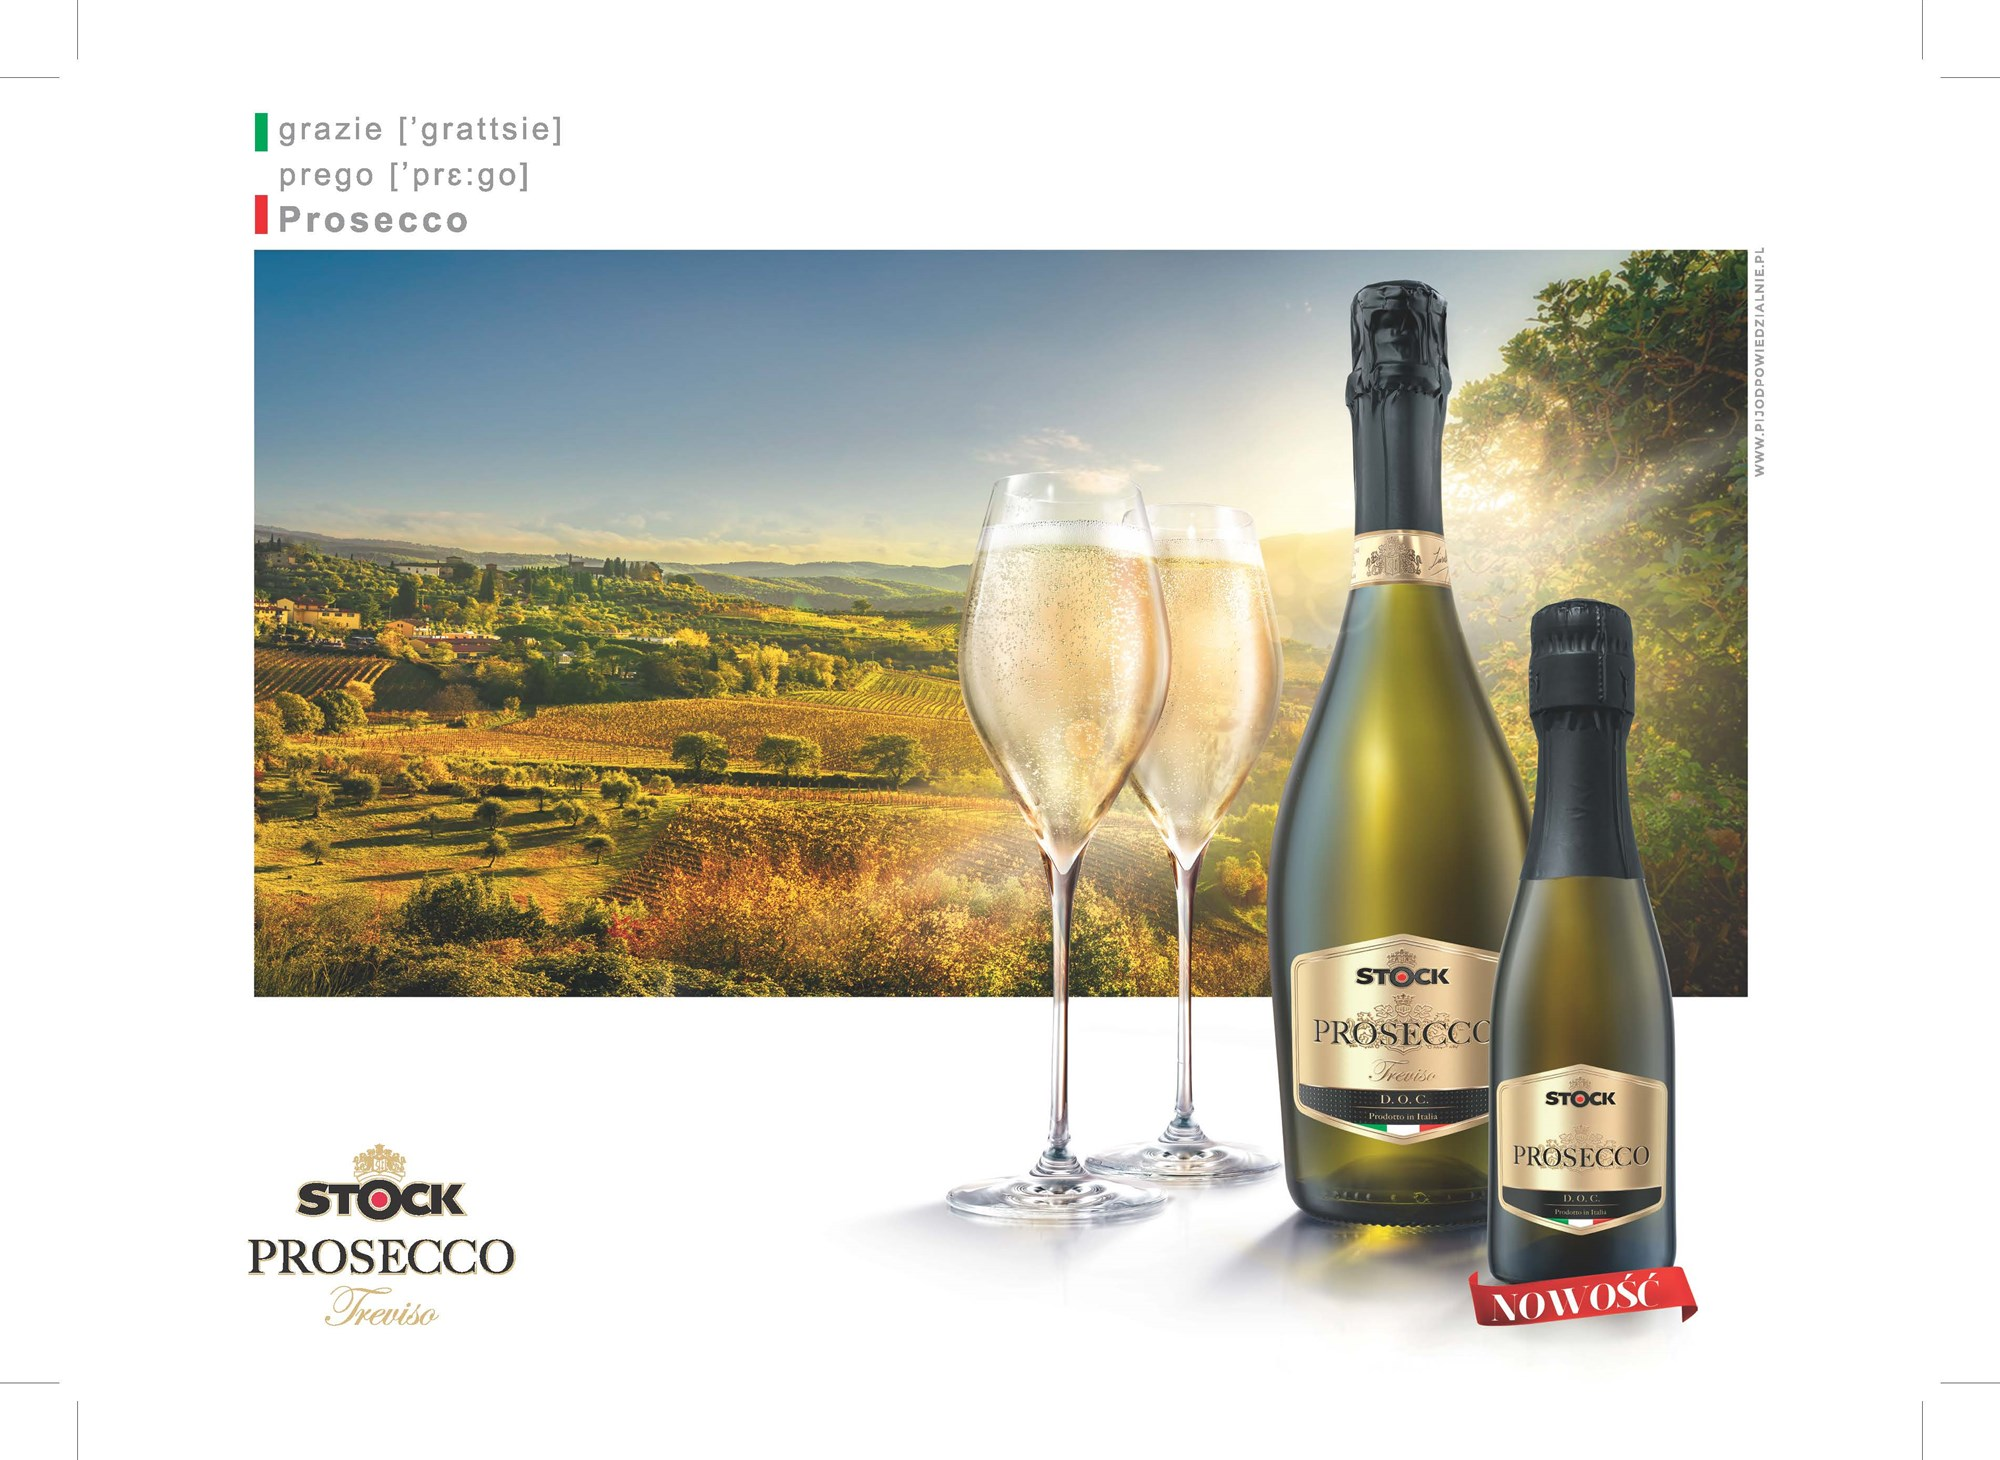 Stock Prosecco in a new 200ml format